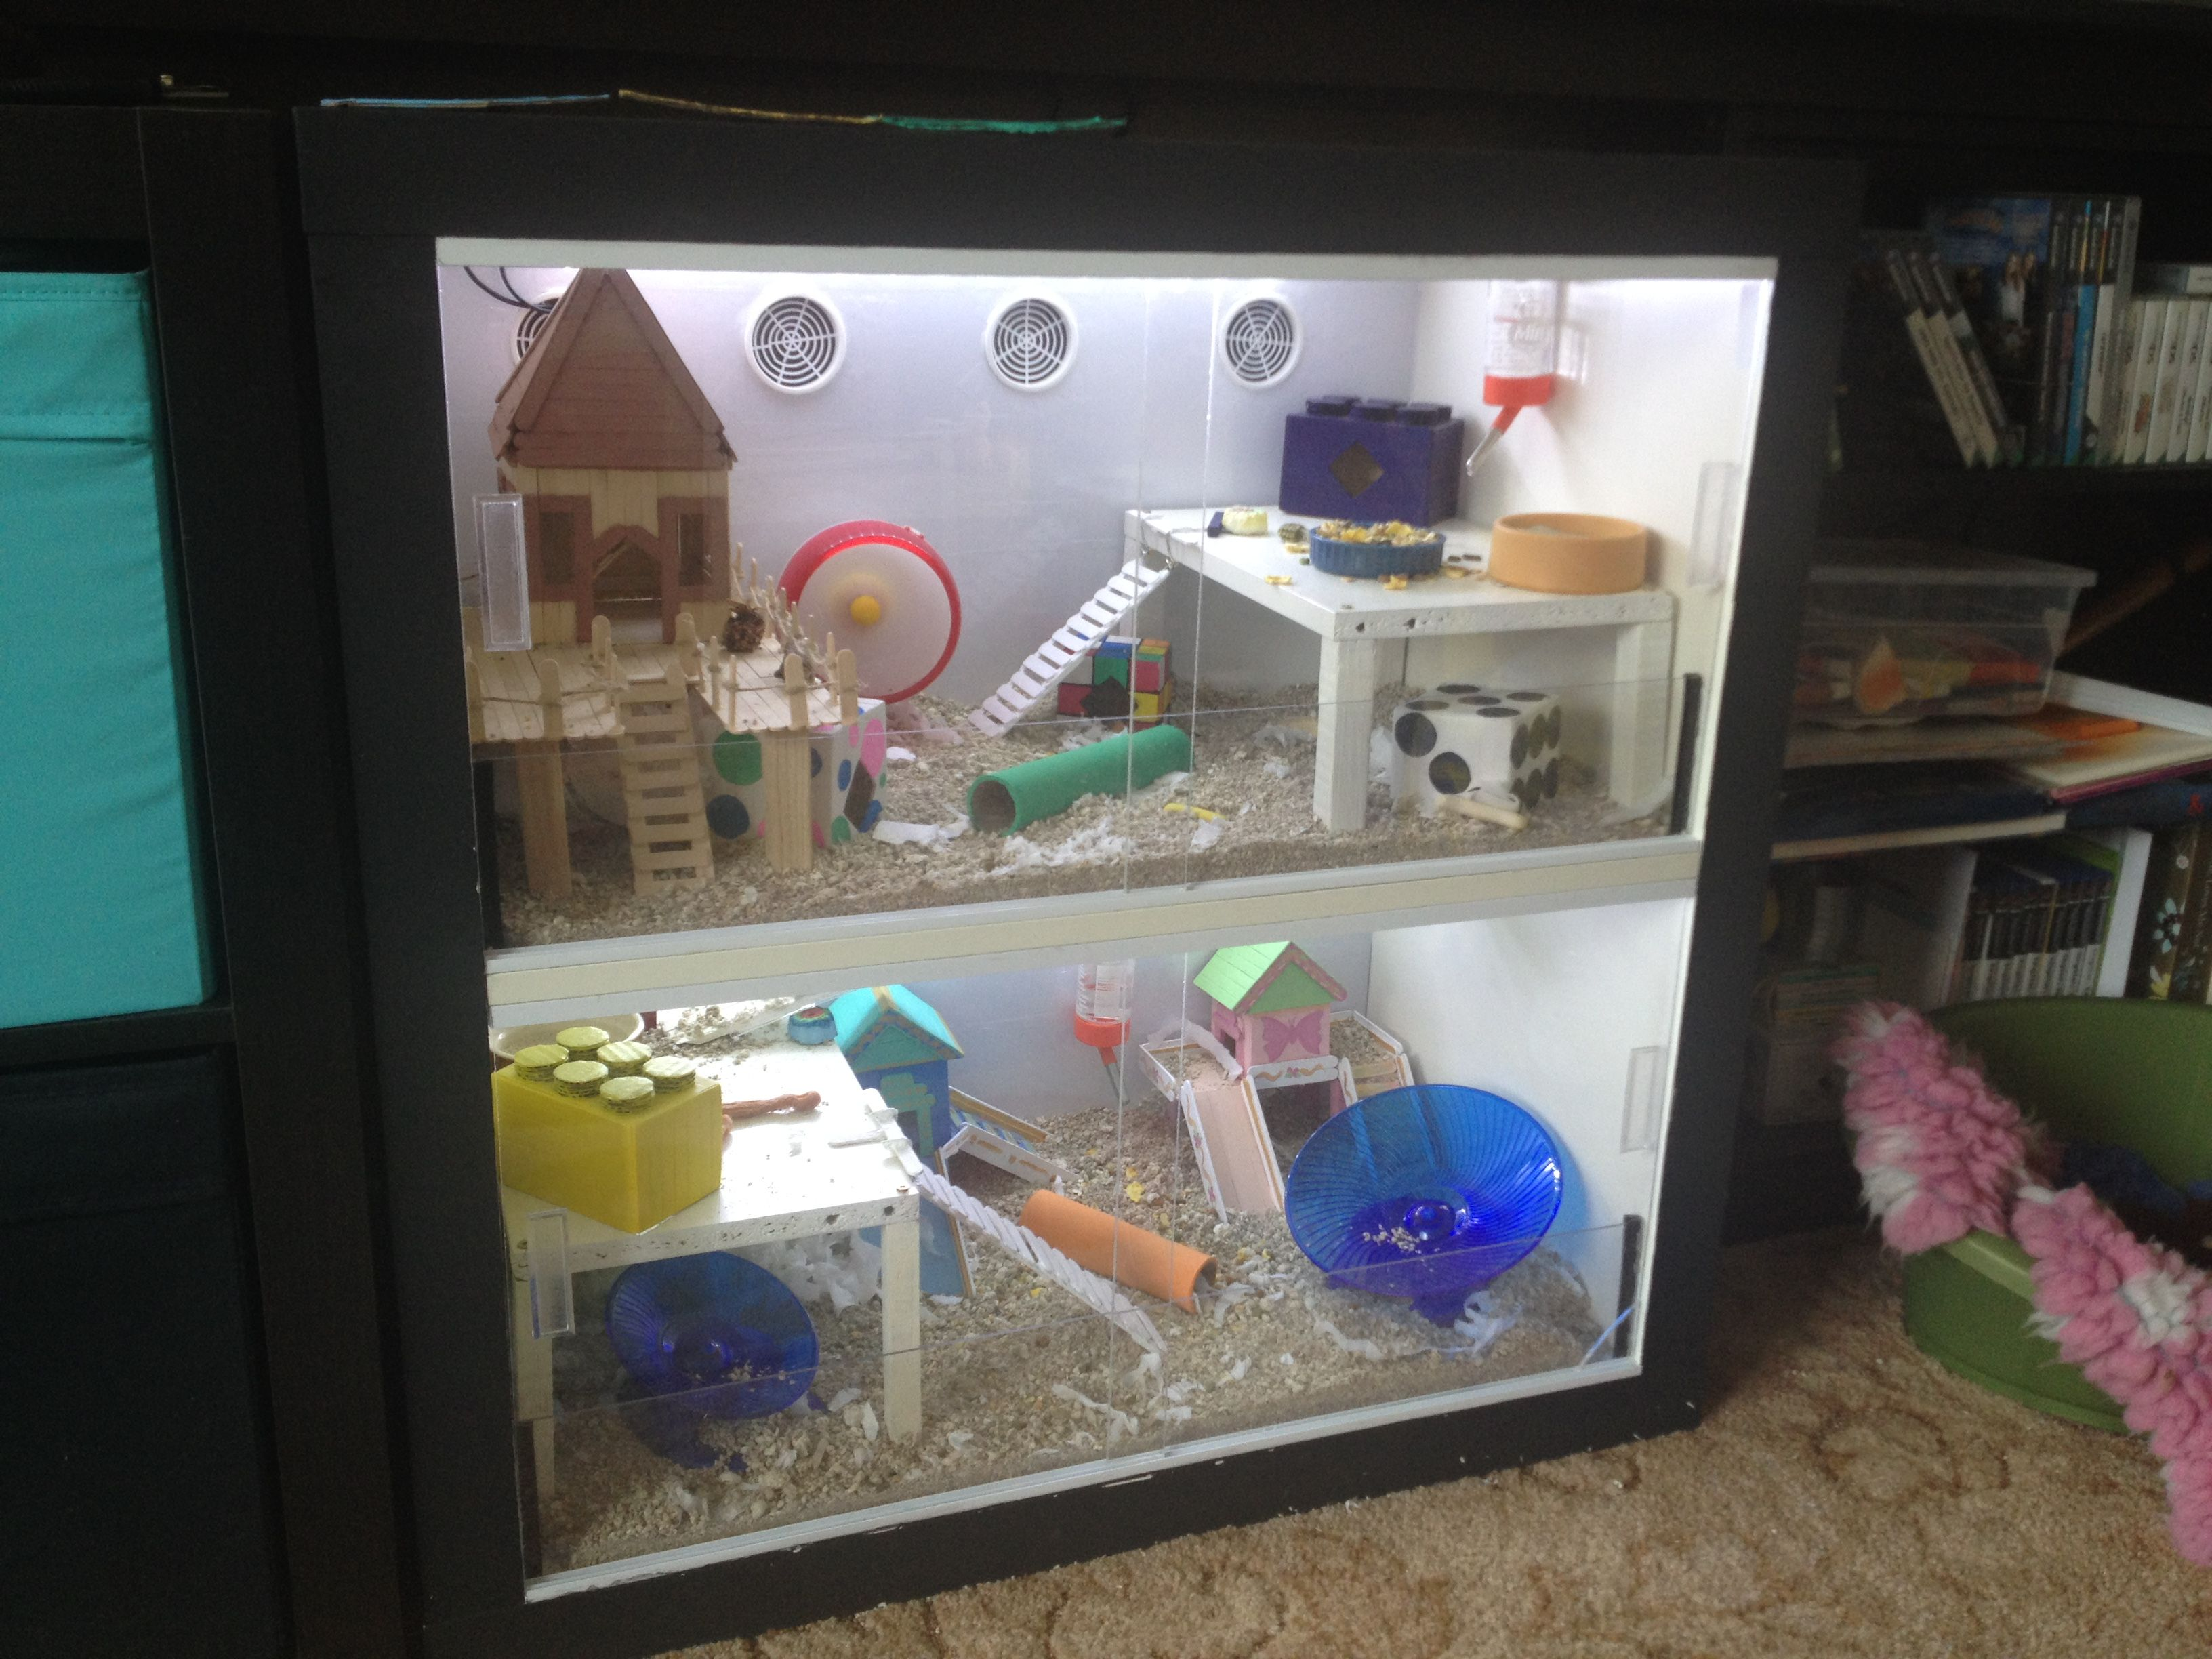 diy hamster cage made from ikea unit check out how easy